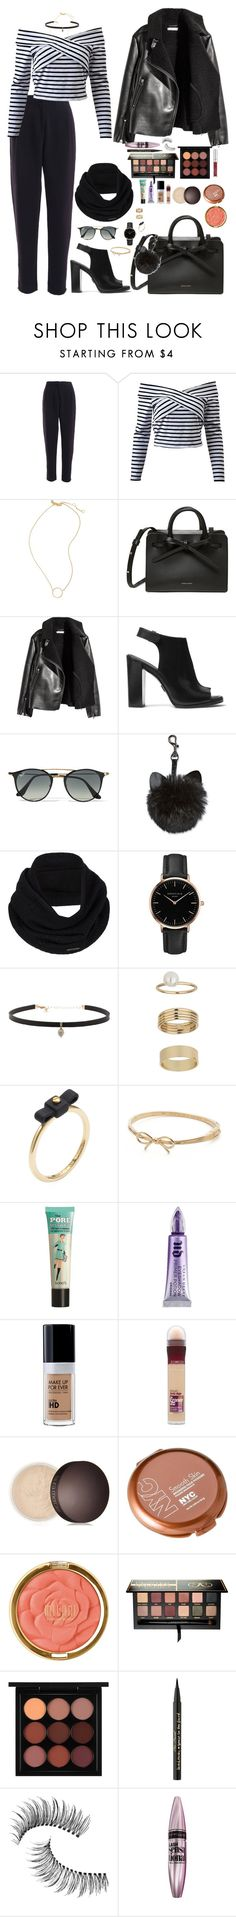 """Winter"" by saraxionggg on Polyvore featuring Madewell, Michael Kors, Ray-Ban, prAna, Topshop, Carbon & Hyde, Miss Selfridge, Marc by Marc Jacobs, Kate Spade and Benefit"